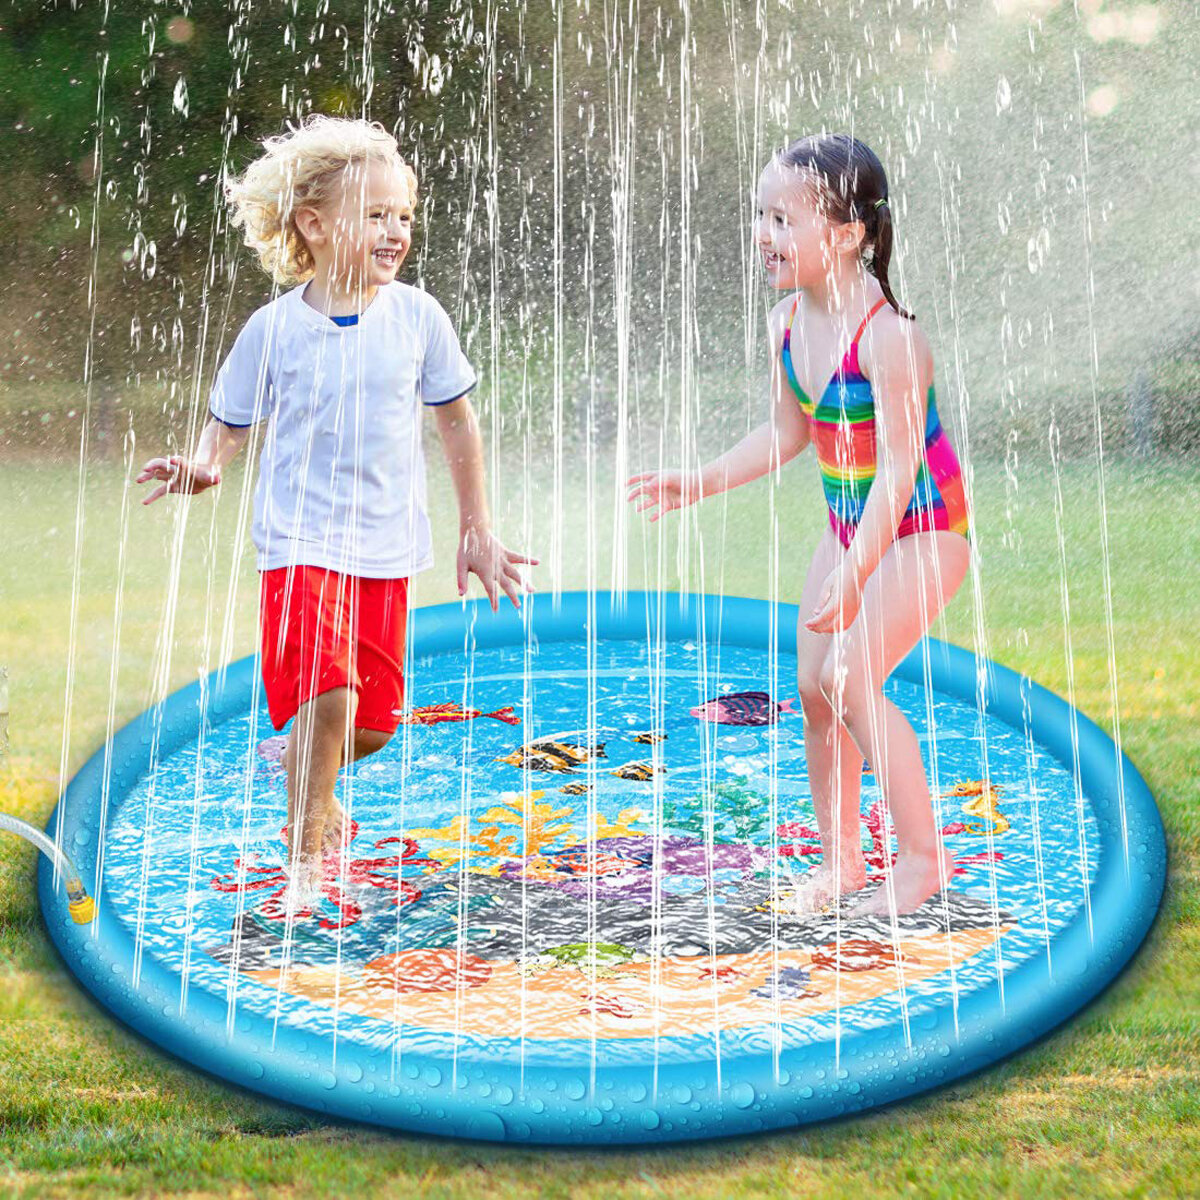 67'' Splash Water Play Mat Sprinkle Splash Play Mat Toy for Outdoor Swimming Beach Lawn Inflatable Sprinkler Pad For Kid